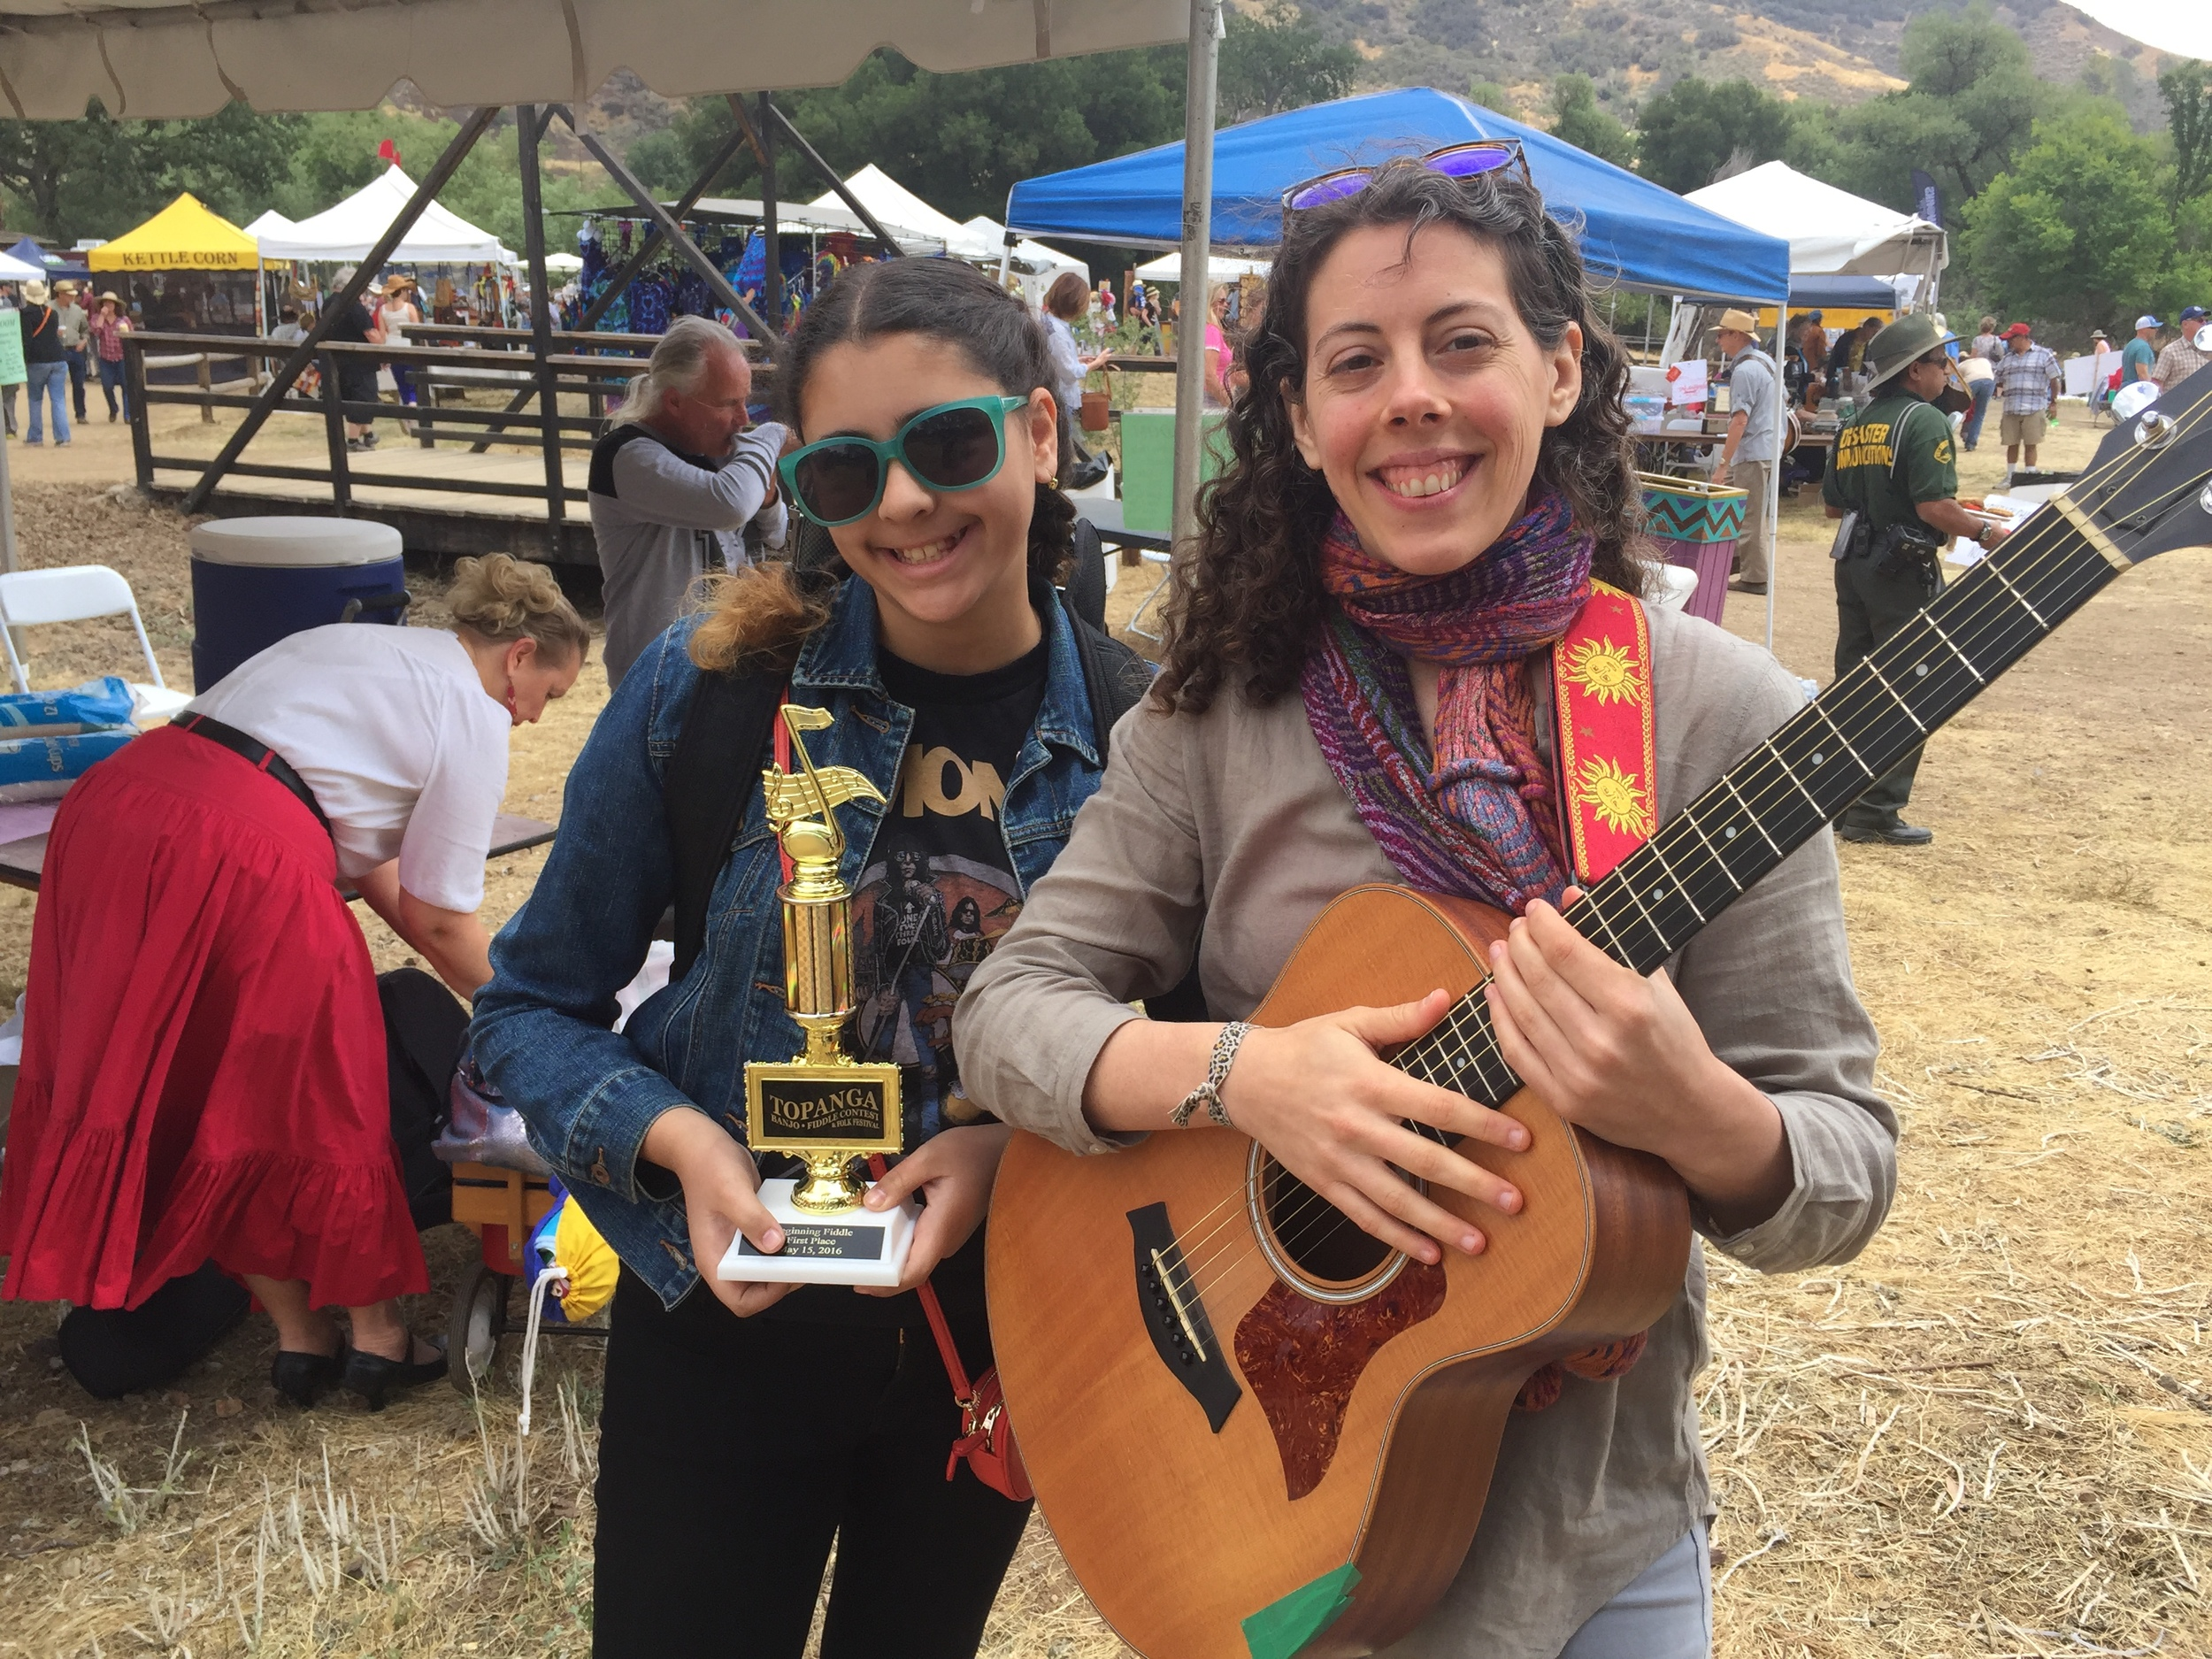 Student Sophie won 1st place in Beginning Fiddle at the 2016 Topanga Banjo Fiddle Contest.